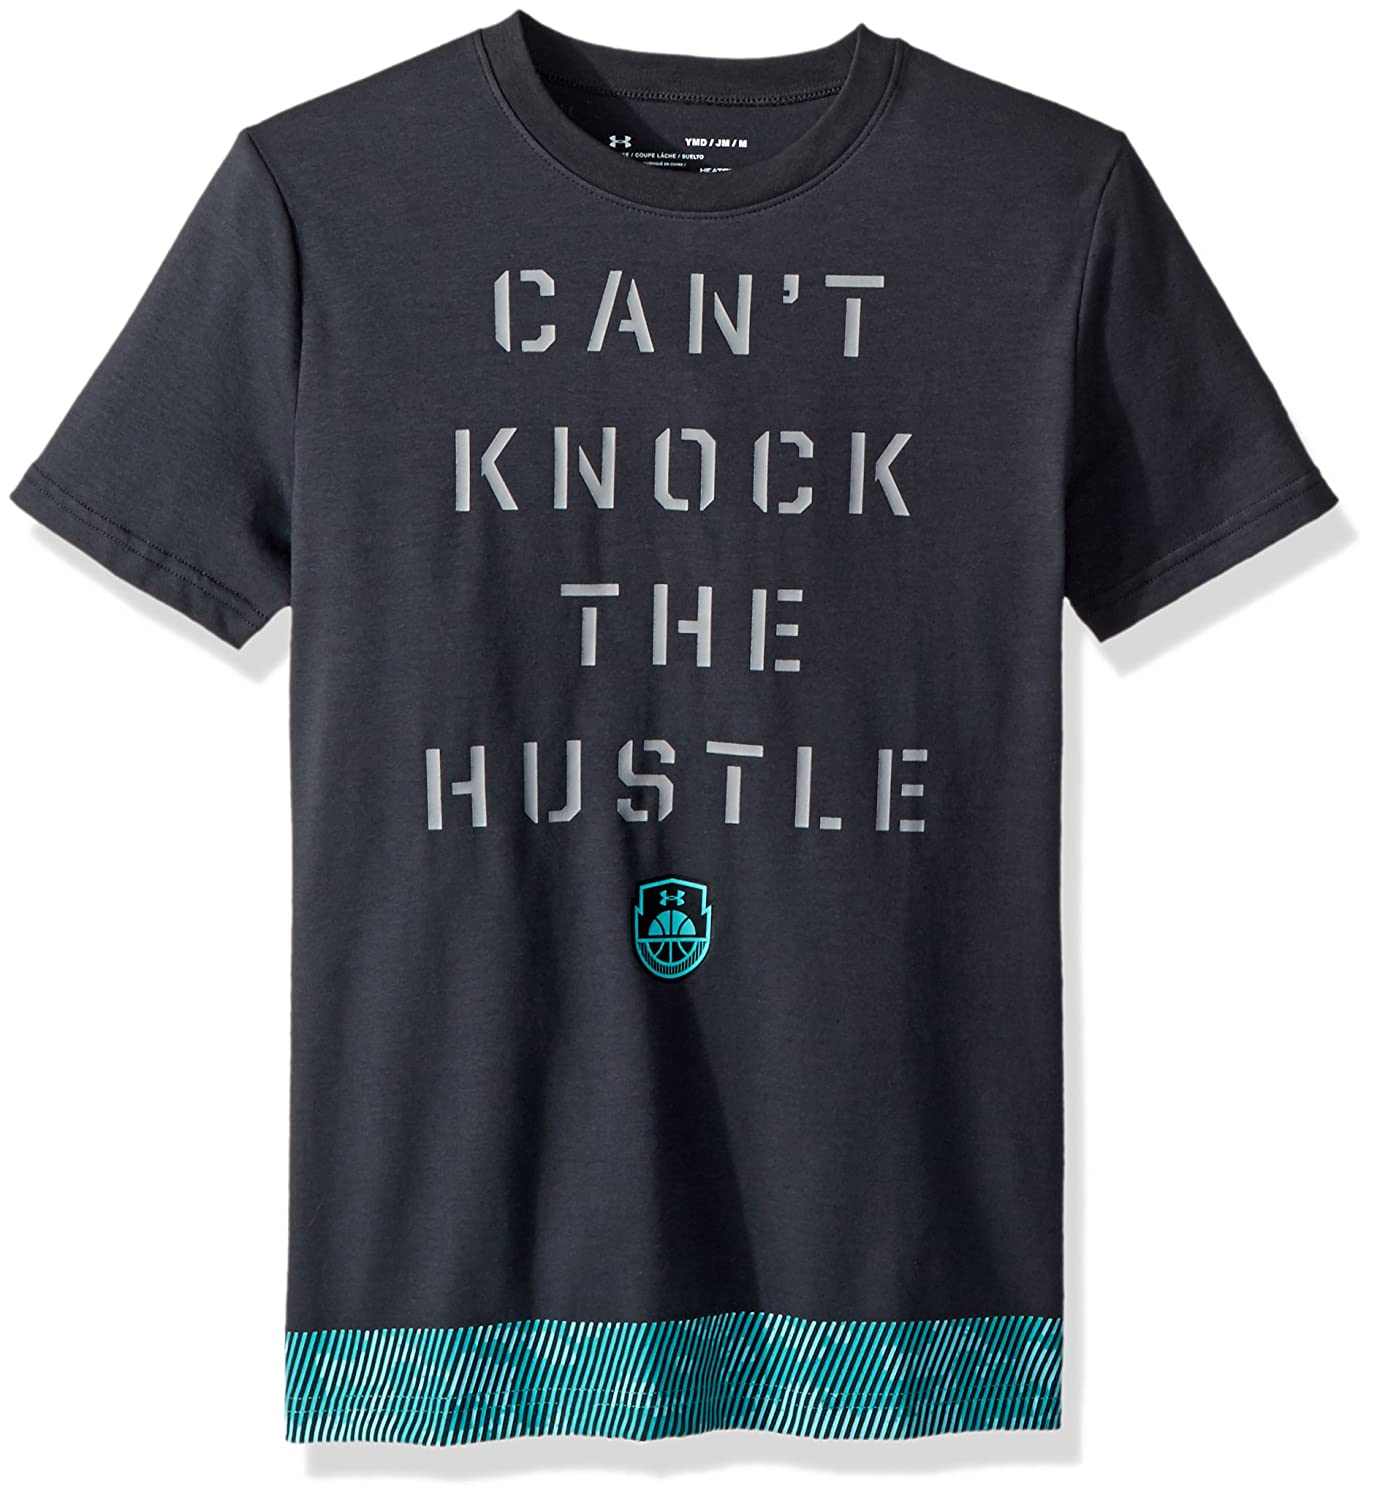 Under Armour ボーイズ ノックザハッスルTシャツ B0728BPJPJ  Anthracite (016)/Teal Punch Youth Large